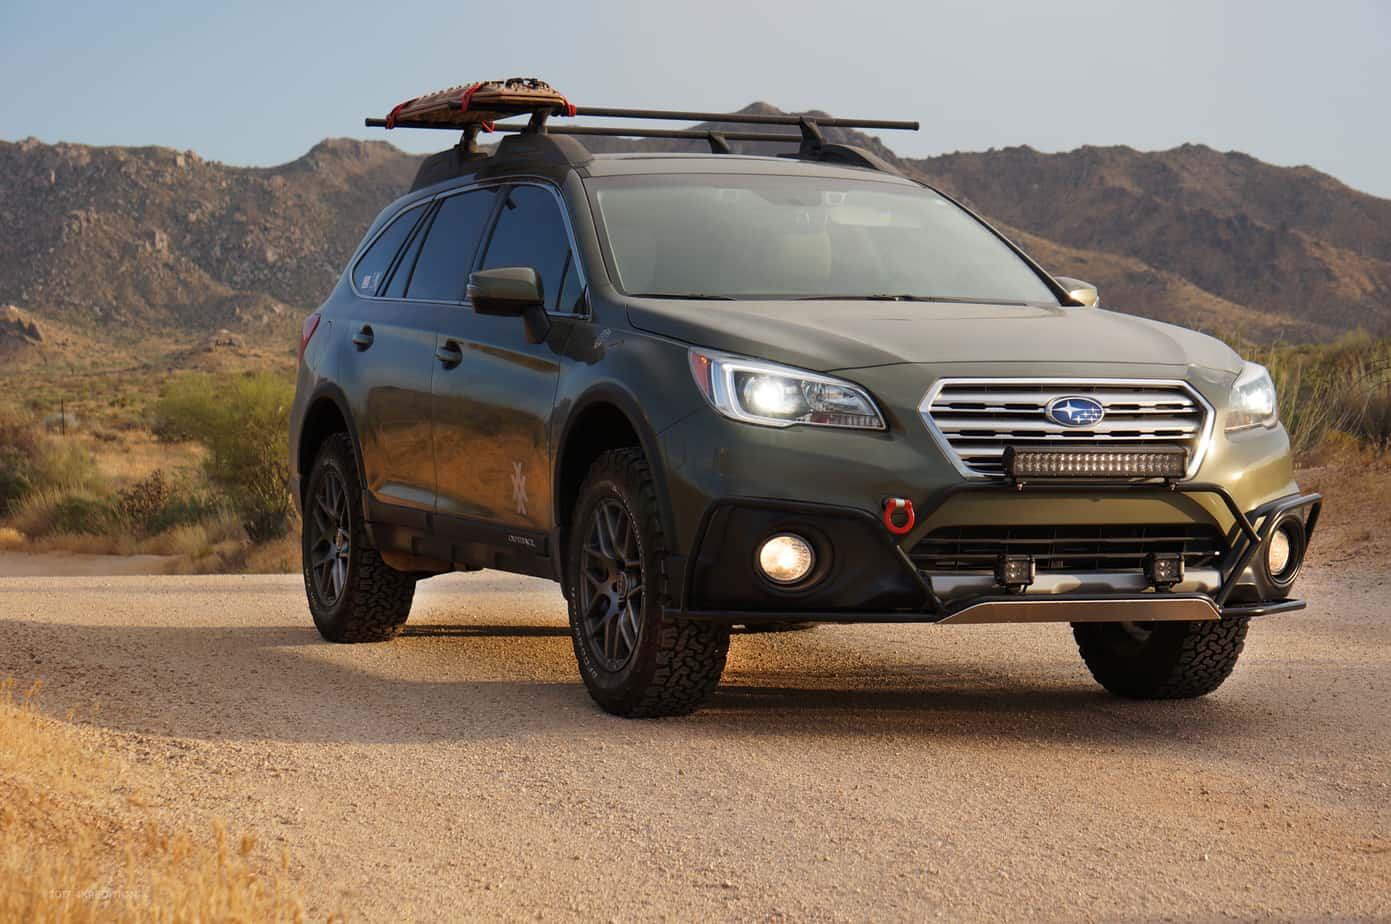 featured vehicle 2017 4xpedition subaru outback 3 6r expedition portal. Black Bedroom Furniture Sets. Home Design Ideas